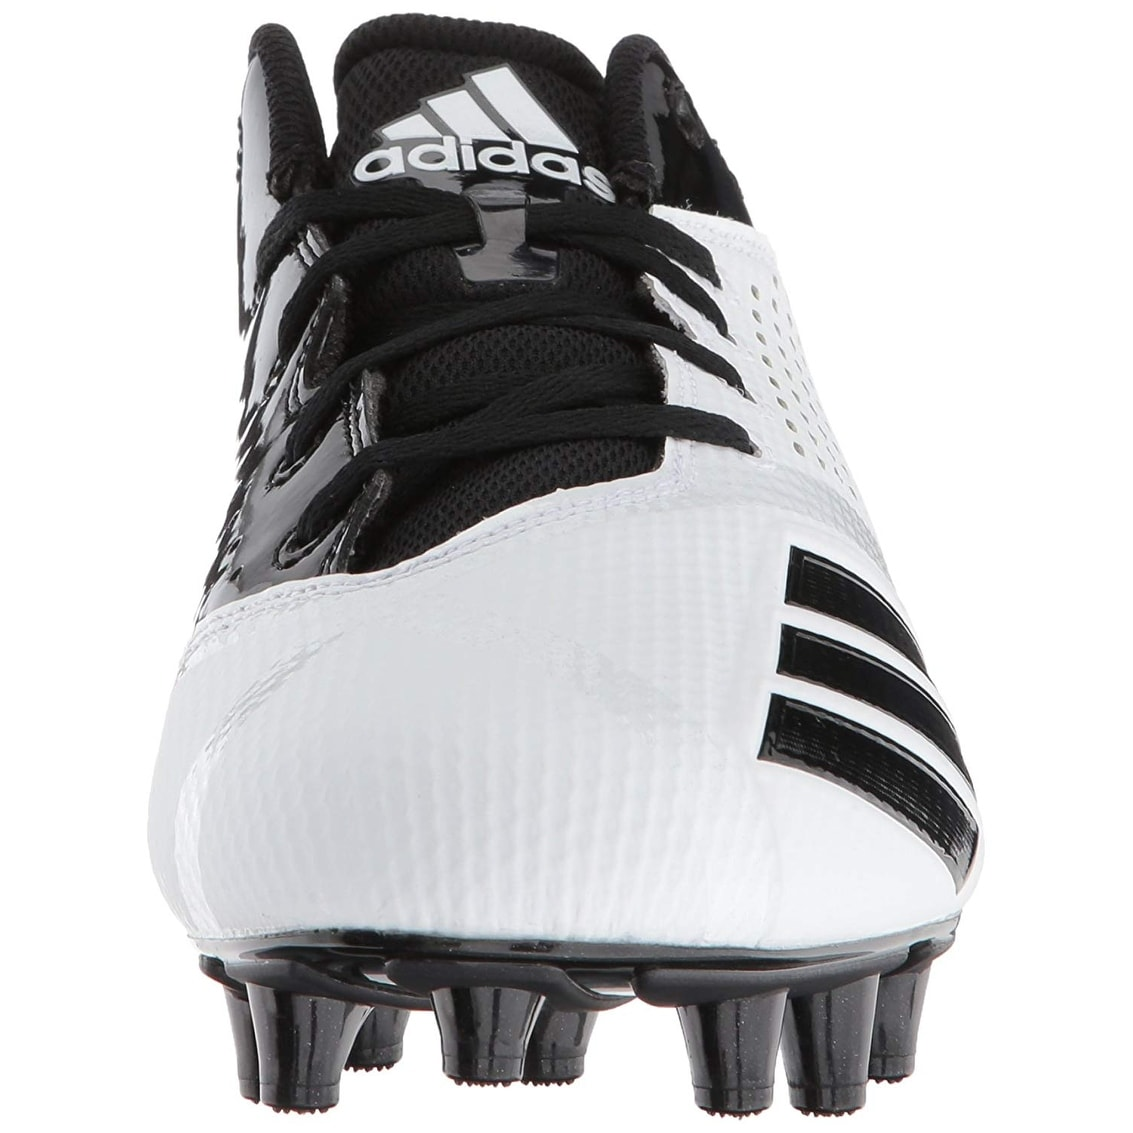 5c3114c22 Shop Adidas Mens Freak X Carbon Low Top Lace Up Soccer Sneaker - Free  Shipping On Orders Over  45 - Overstock - 22633865